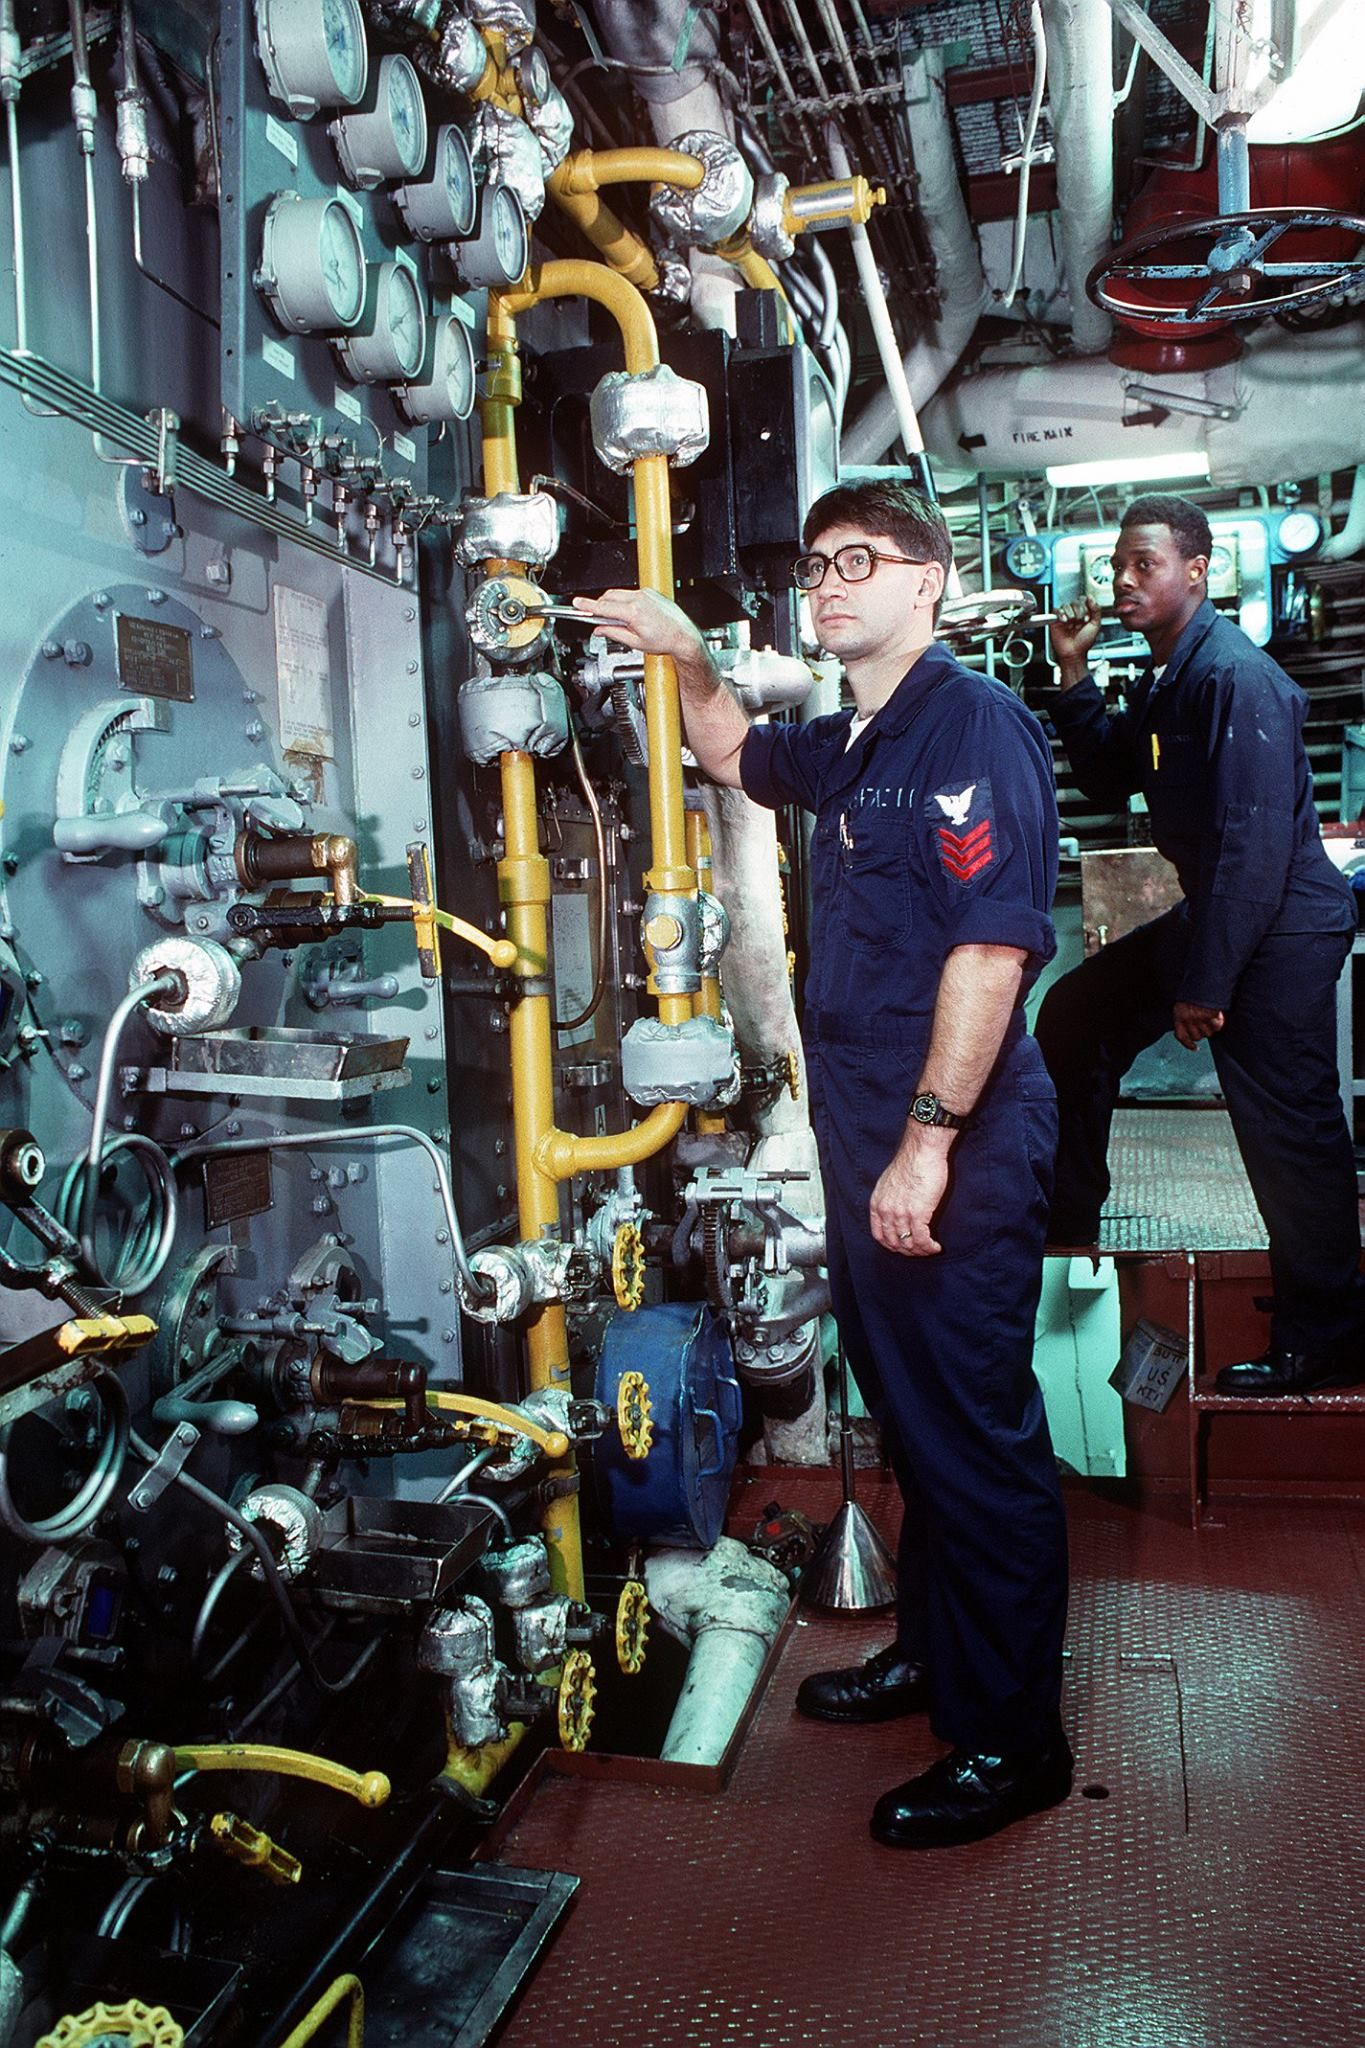 Spaceship Engine Room: Boiler Technicians Monitor Gauges In The Boiler Room Of